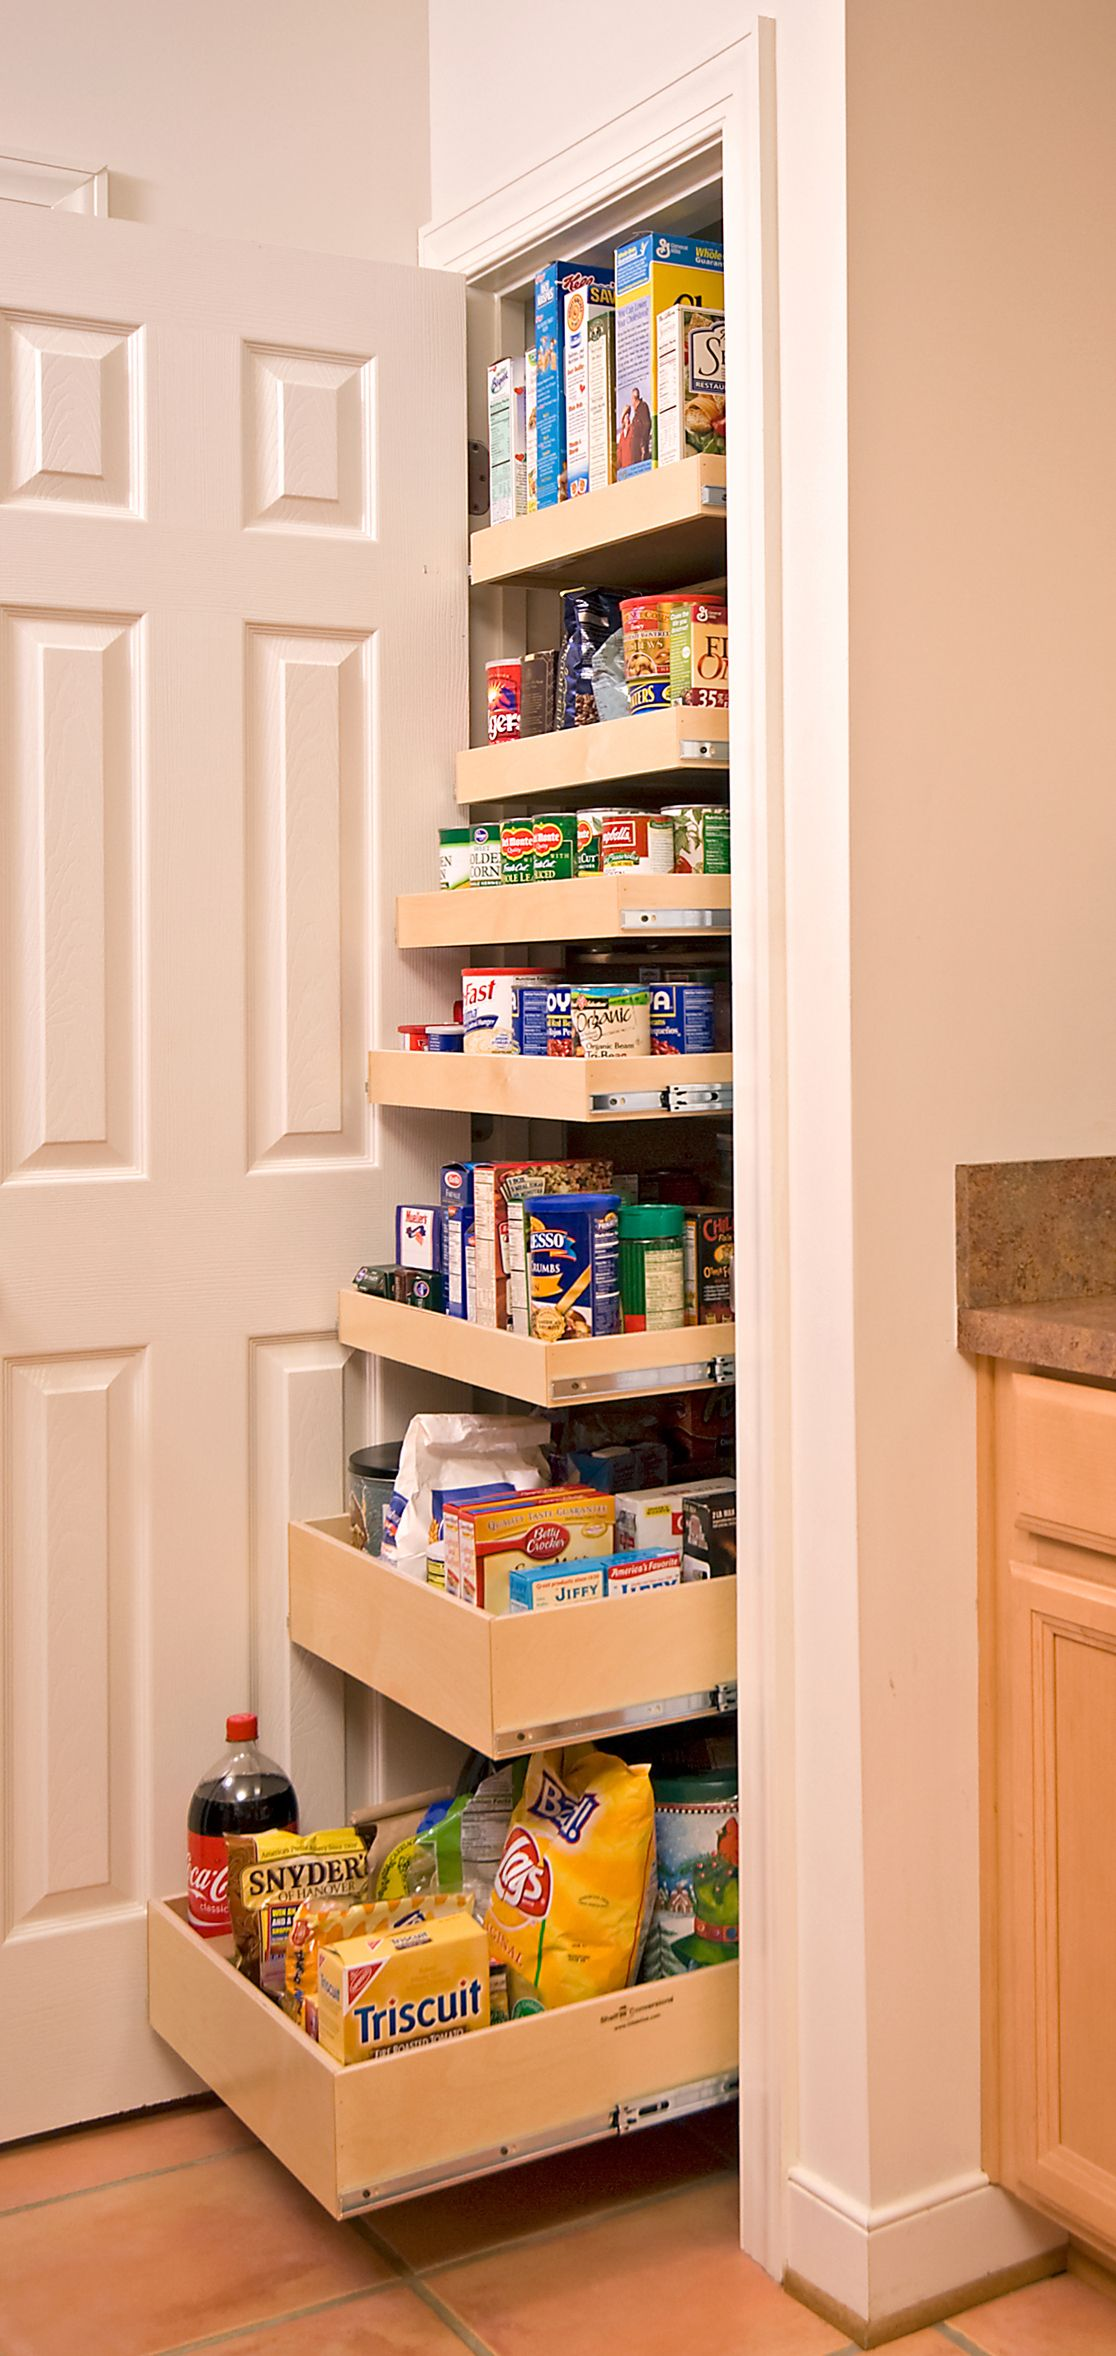 Diy Kitchen Pull Out Shelves Turn Your Empty Closet Into Something Magical With These Ideas